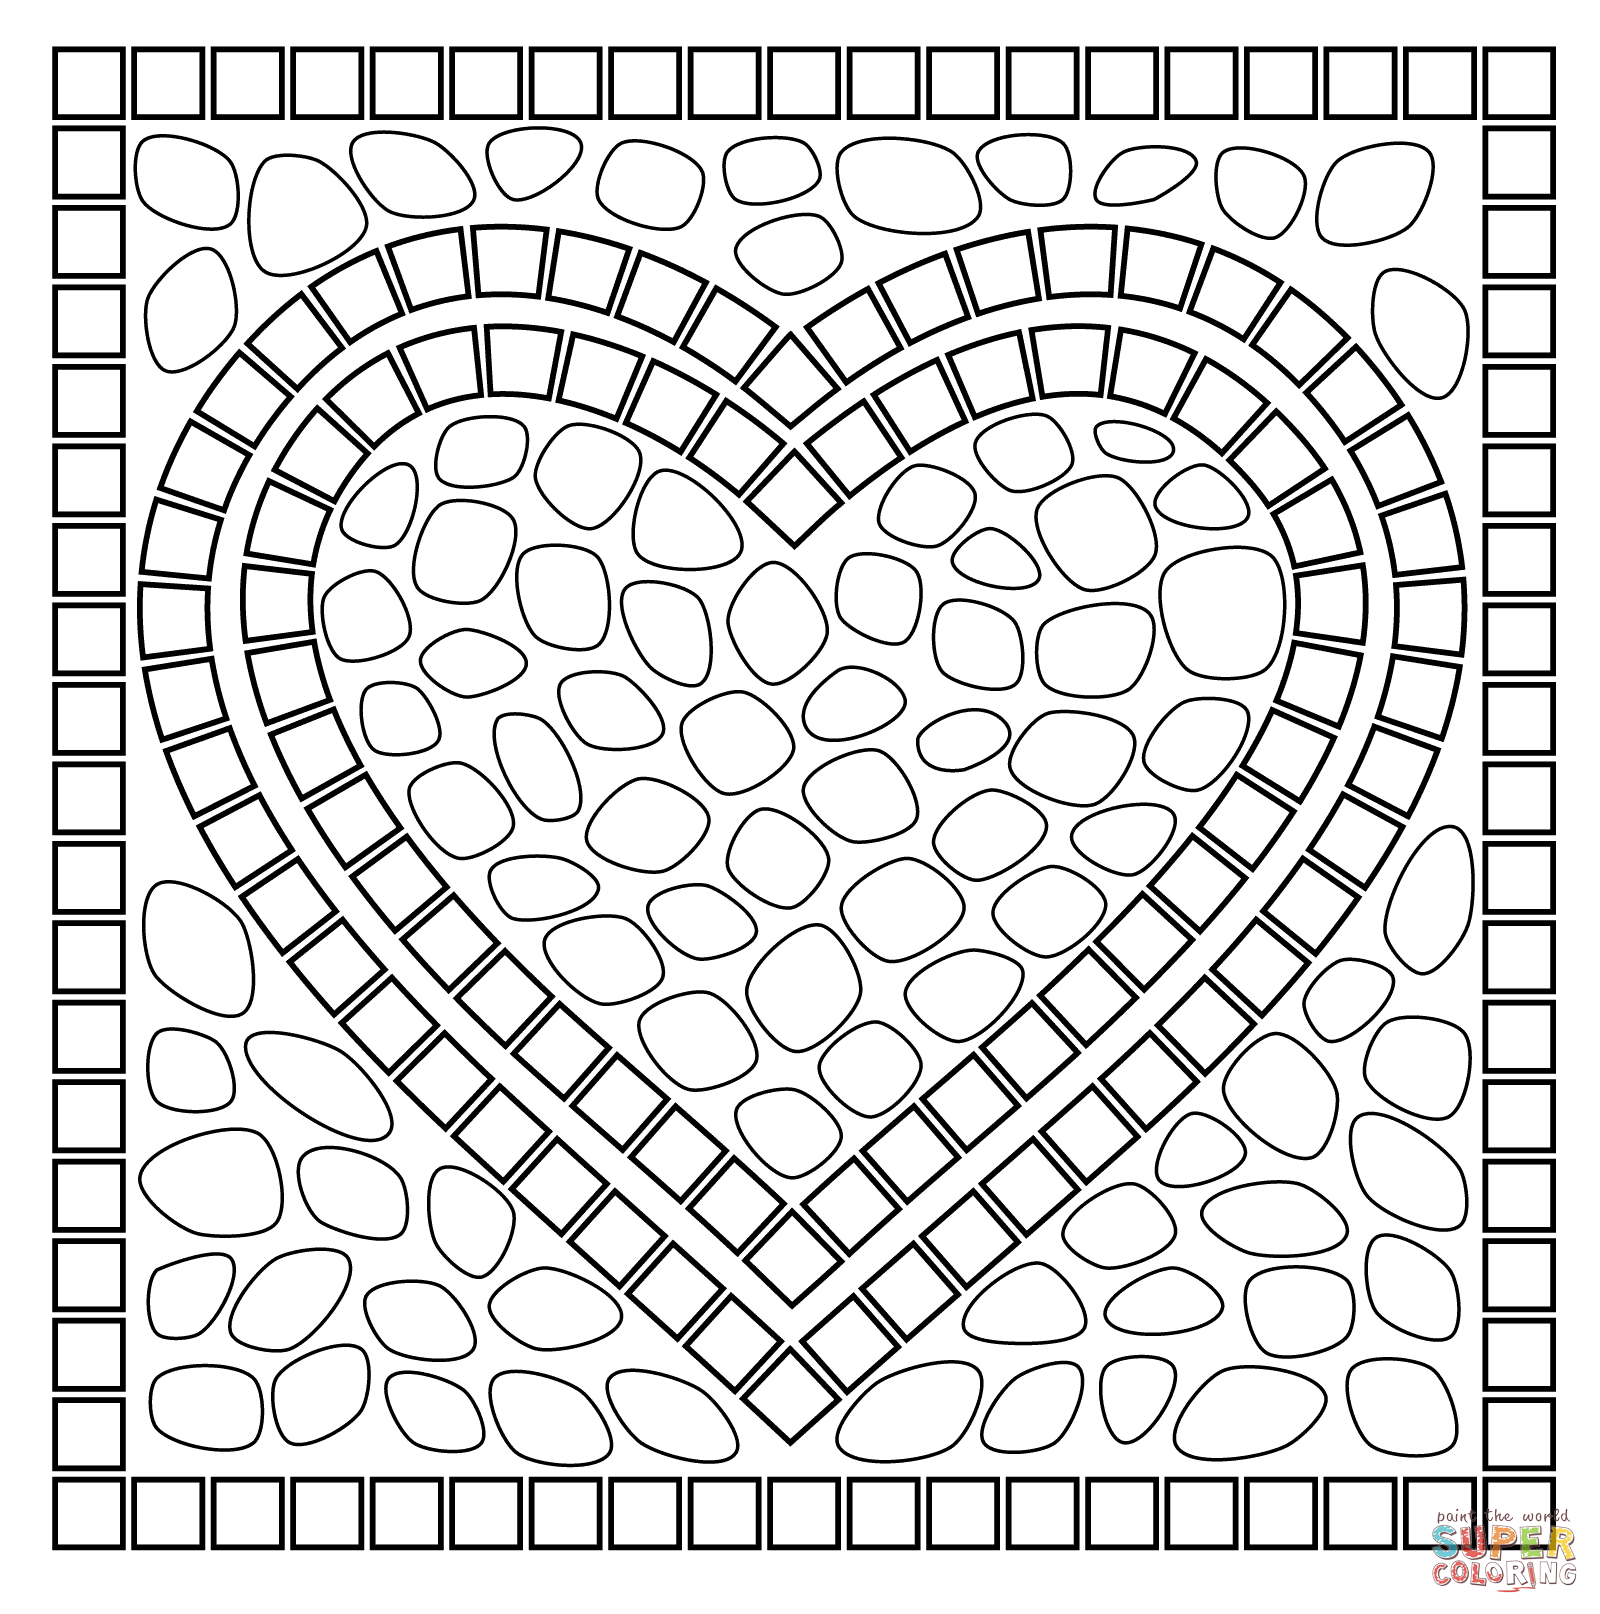 Heart Mosiac Coloring Page Mosaic Patterns Free Mosaic Patterns Easy Mosaic